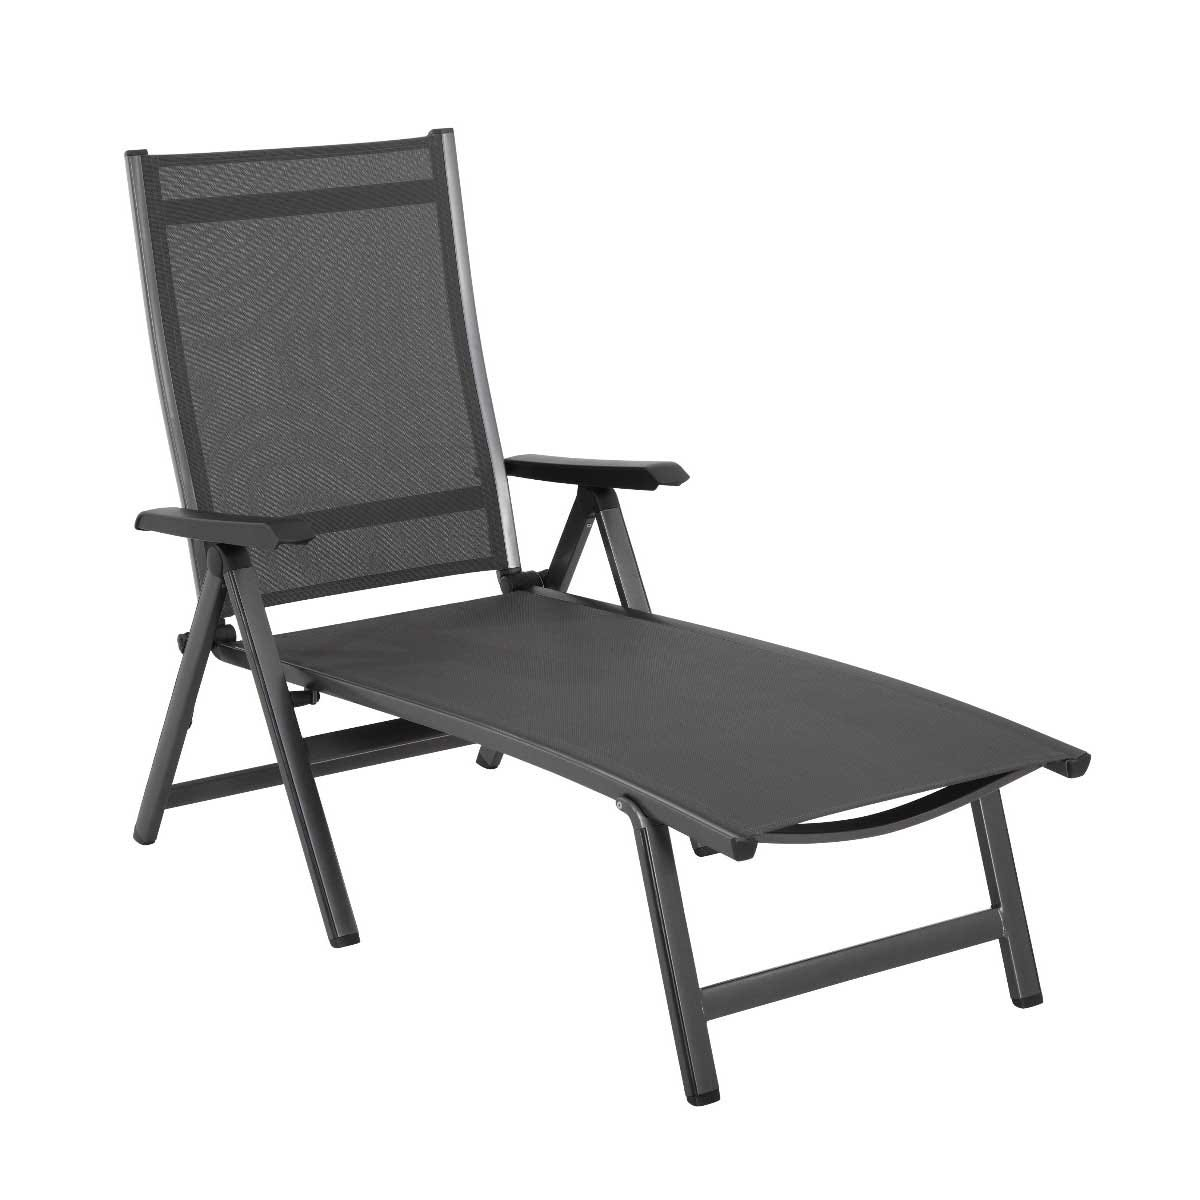 MWH Elements Lounger - Anthracite